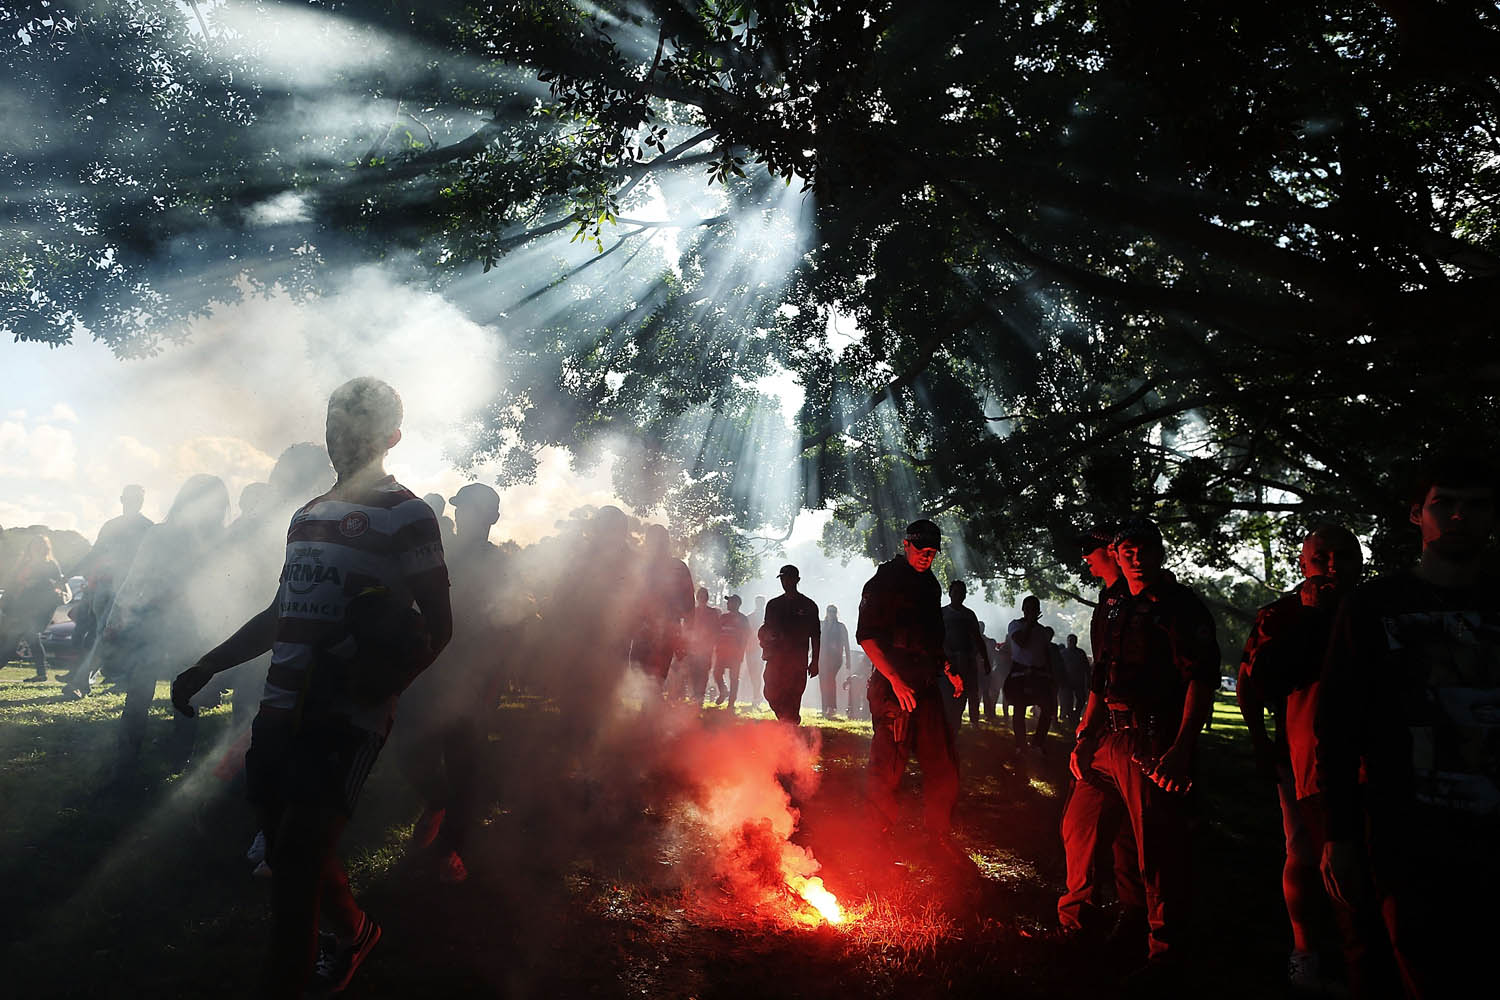 April 21, 2013. Police officers extinguish a flare as Western Sydney Wanderers fans walk to the stadium before the A-League 2013 Grand Final match between the Western Sydney Wanderers and the Central Coast Mariners at Allianz Stadium in Sydney.